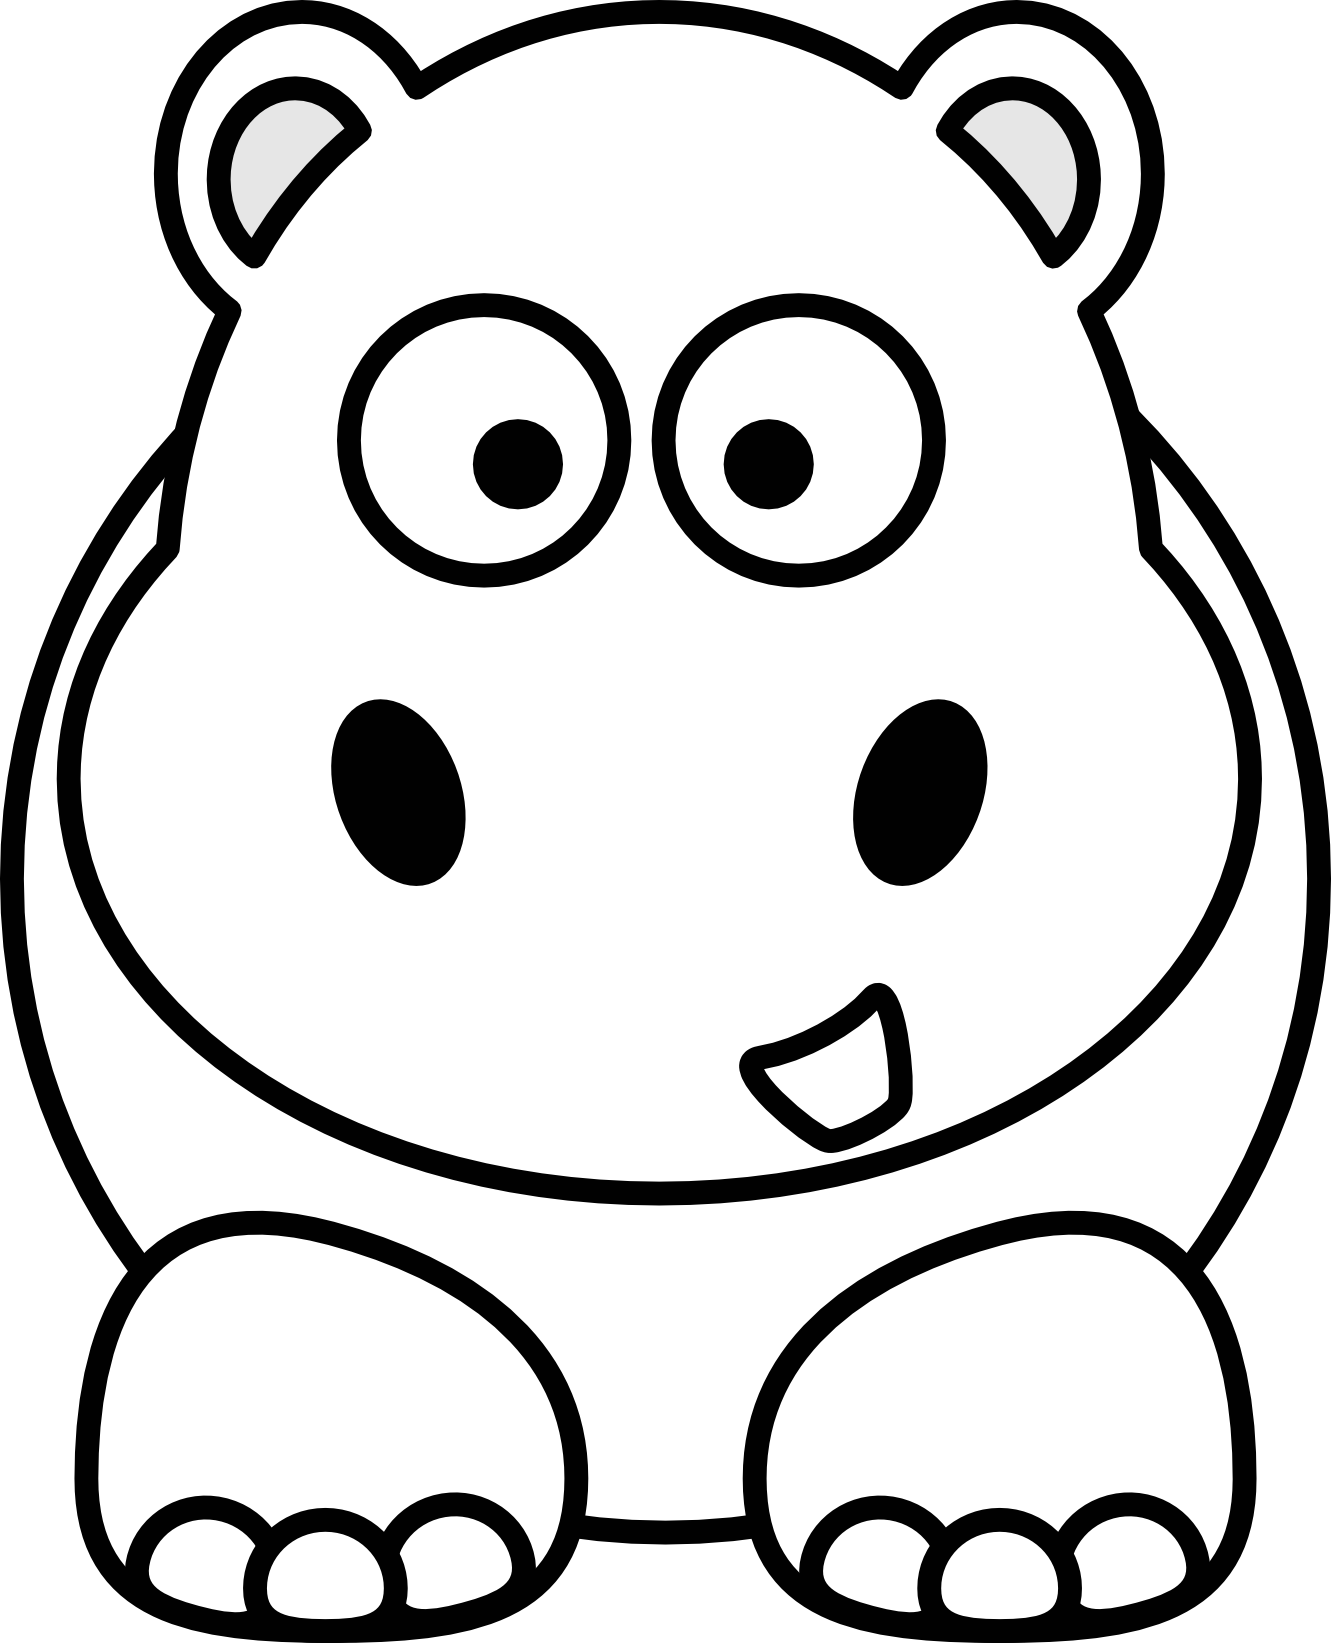 Free black and white animal clipart images banner freeuse Animal Clipart Black And White | Clipart Panda - Free Clipart Images banner freeuse